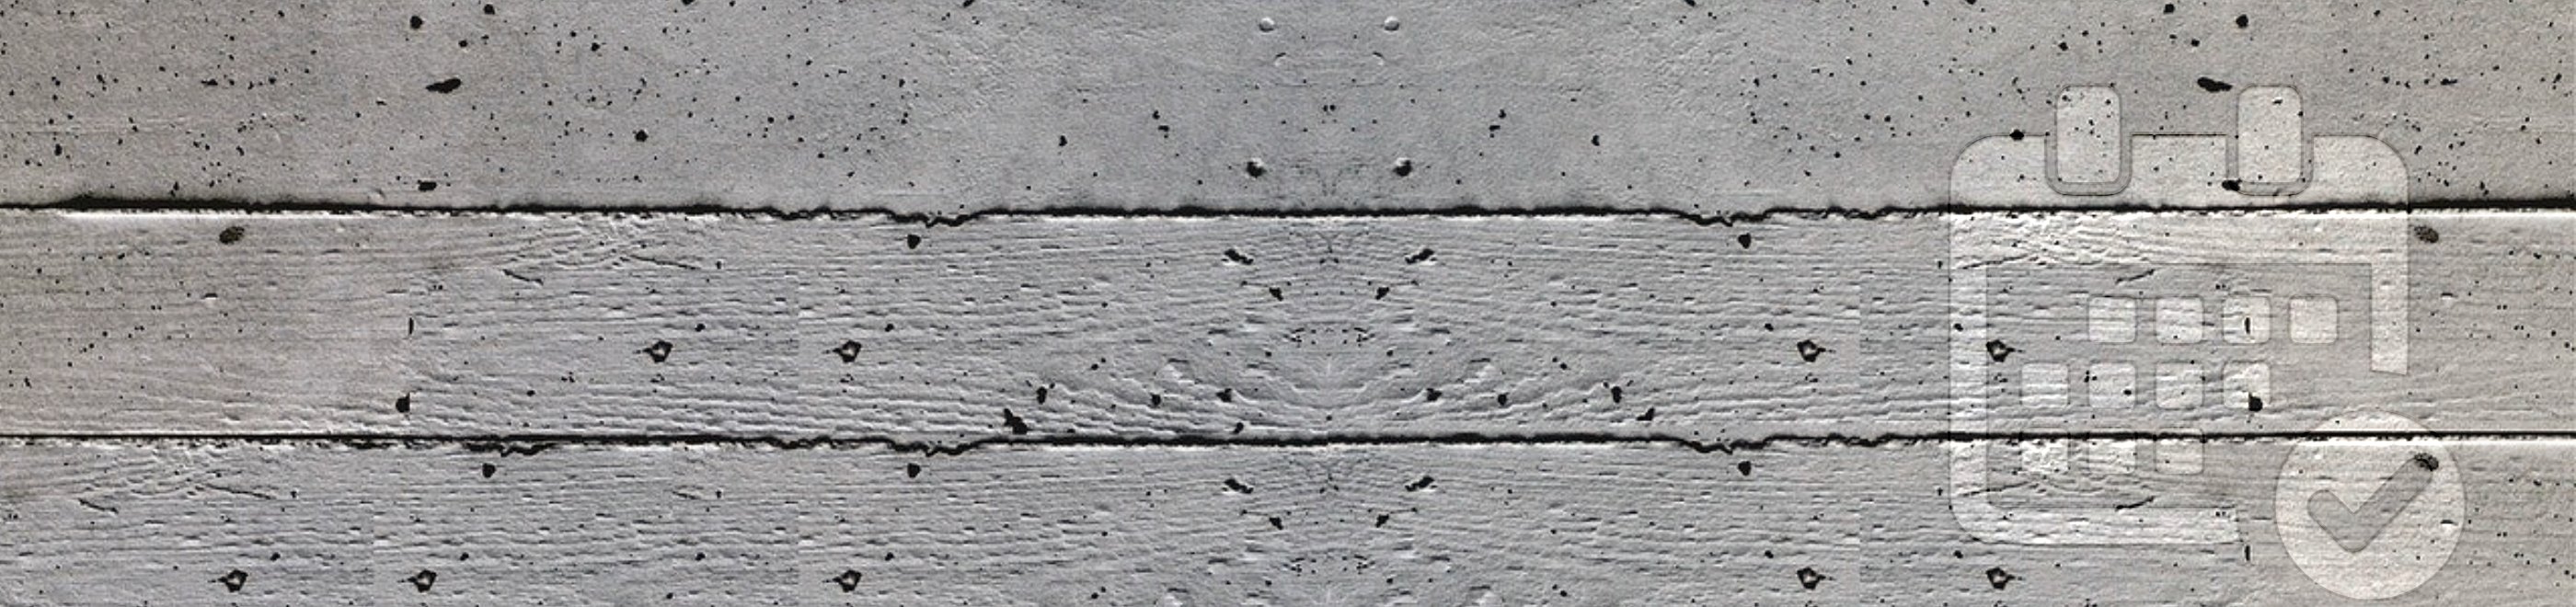 Grey concrete wall with pores and horizontal grooves.